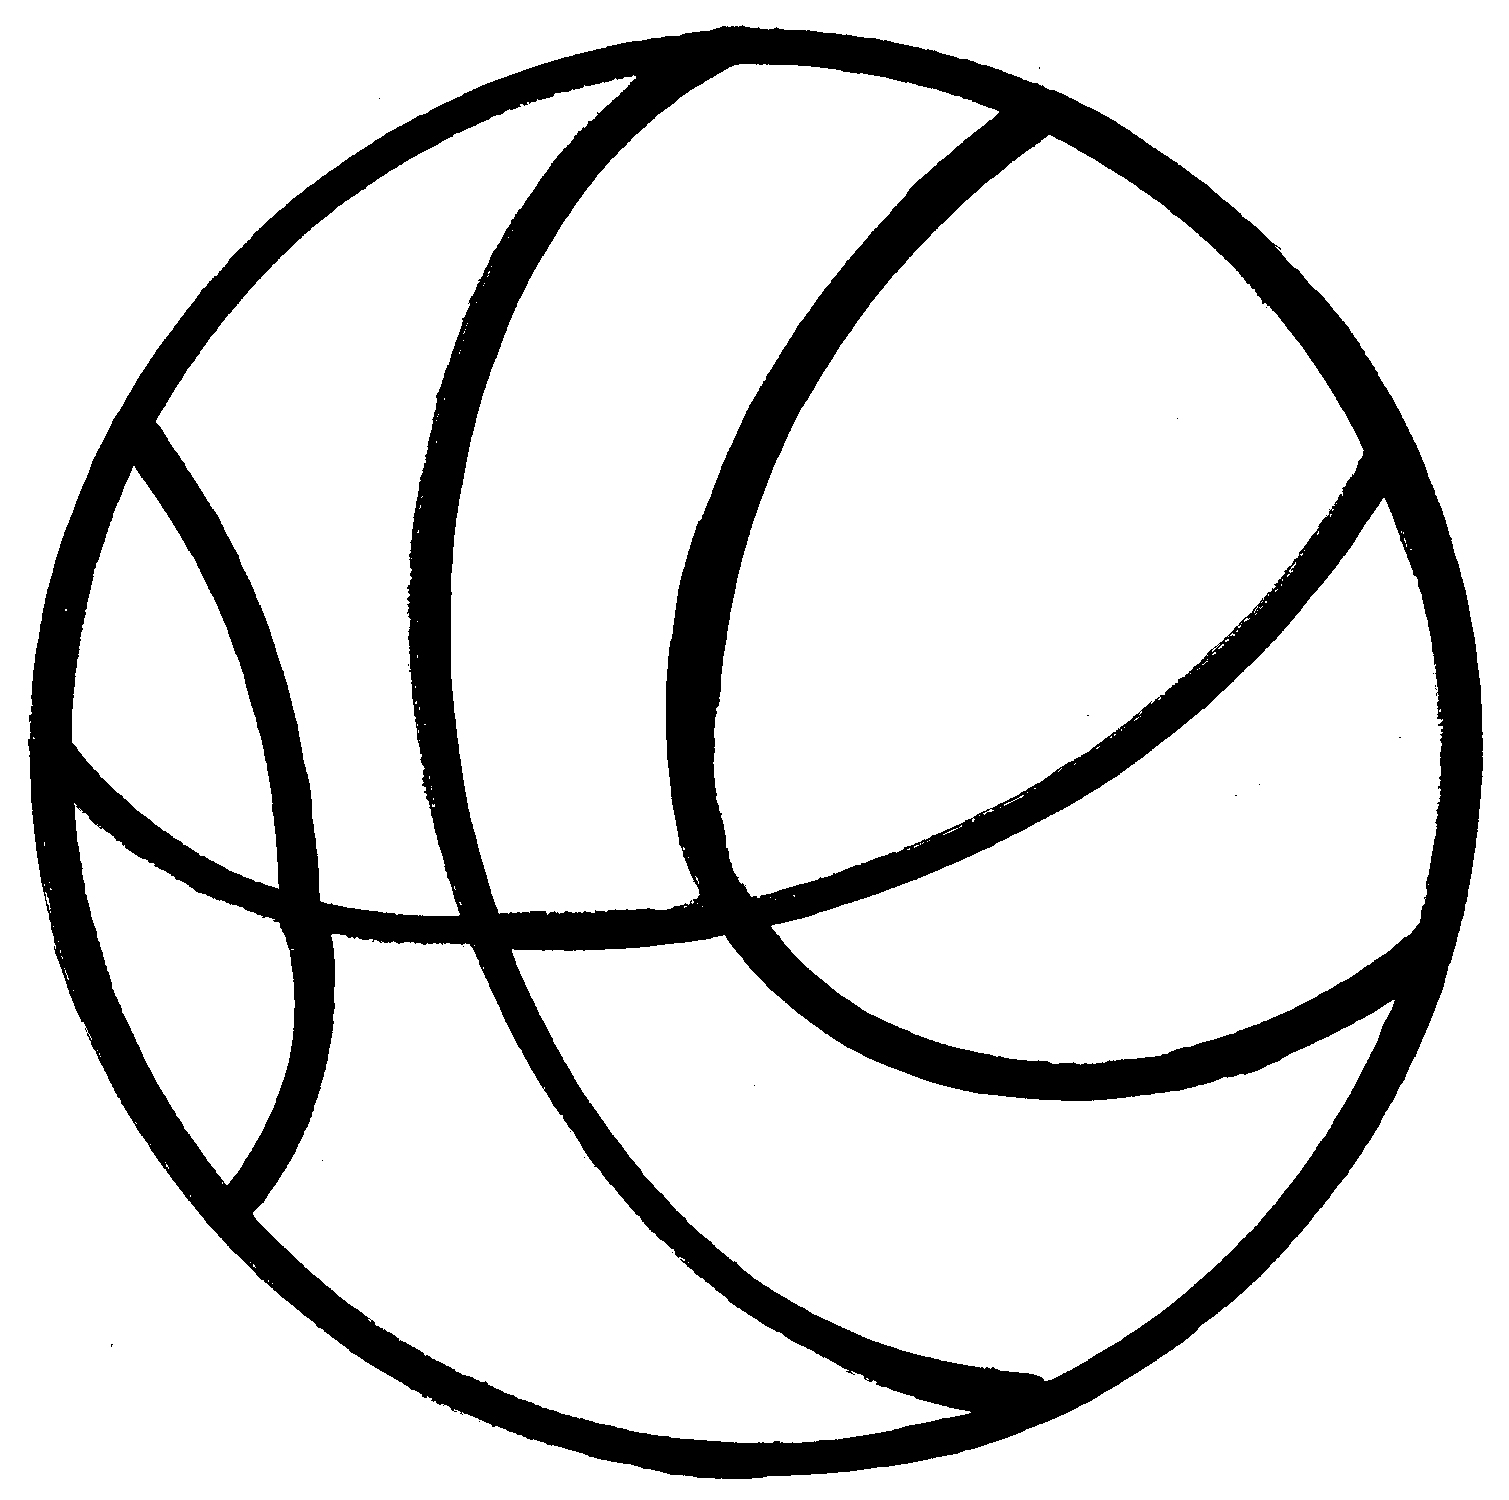 basketball hoop clipart black and white